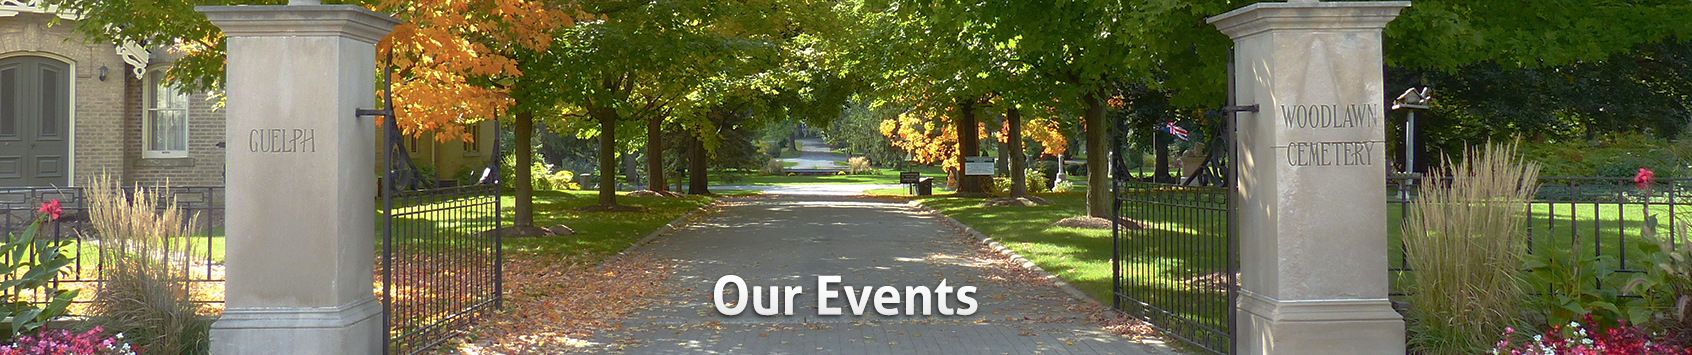 Park Events in Guelph Ontario